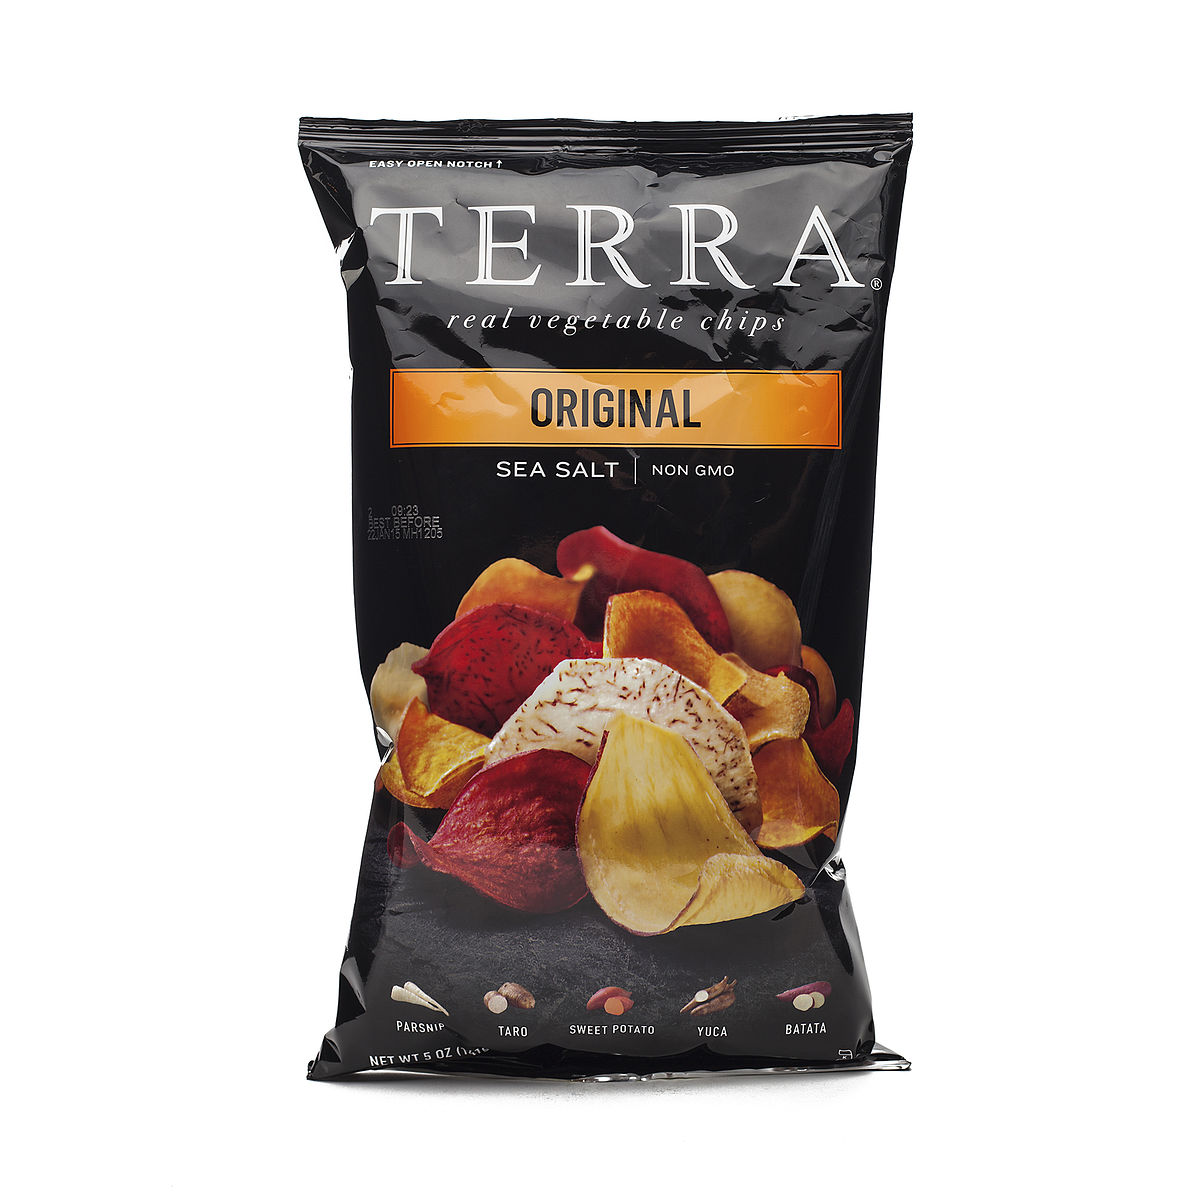 Terra Chips Exotic Vegetable Chips Original Thrive Market